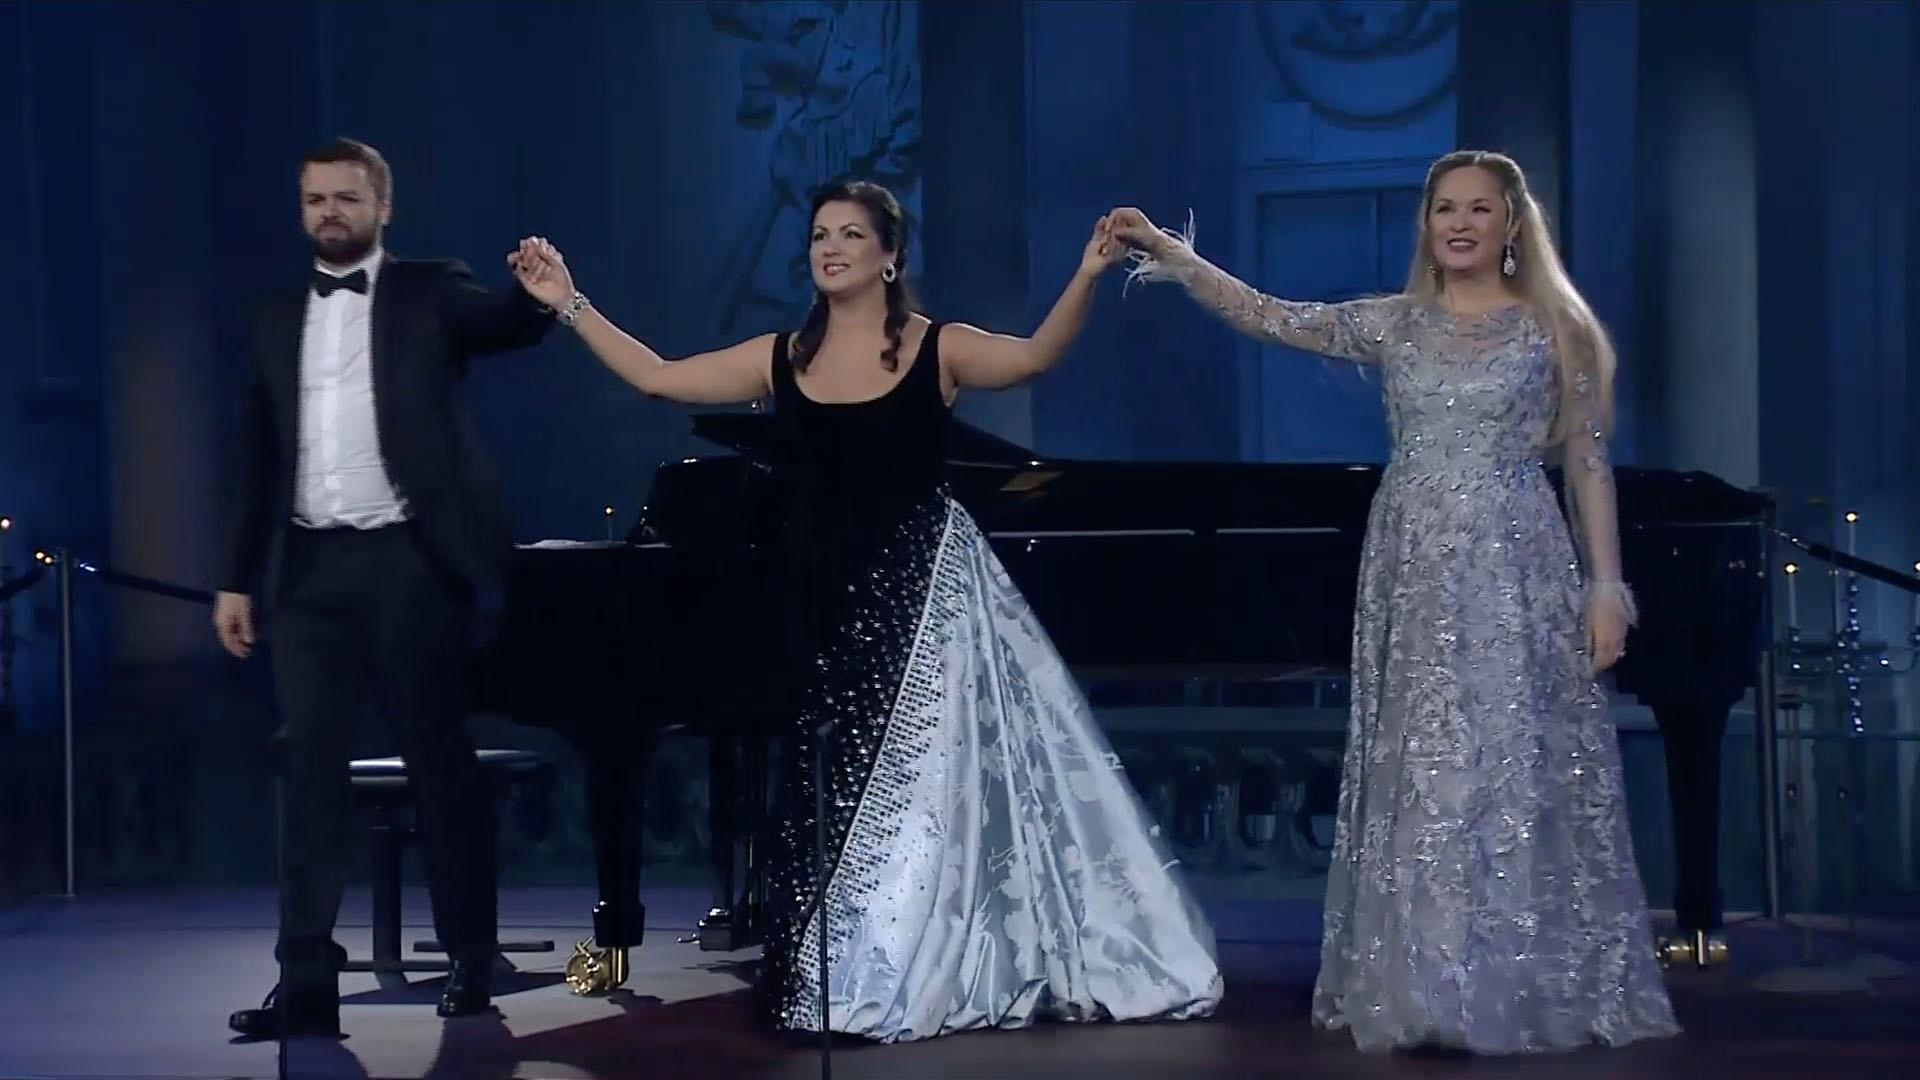 scene from Great Performances at the Met